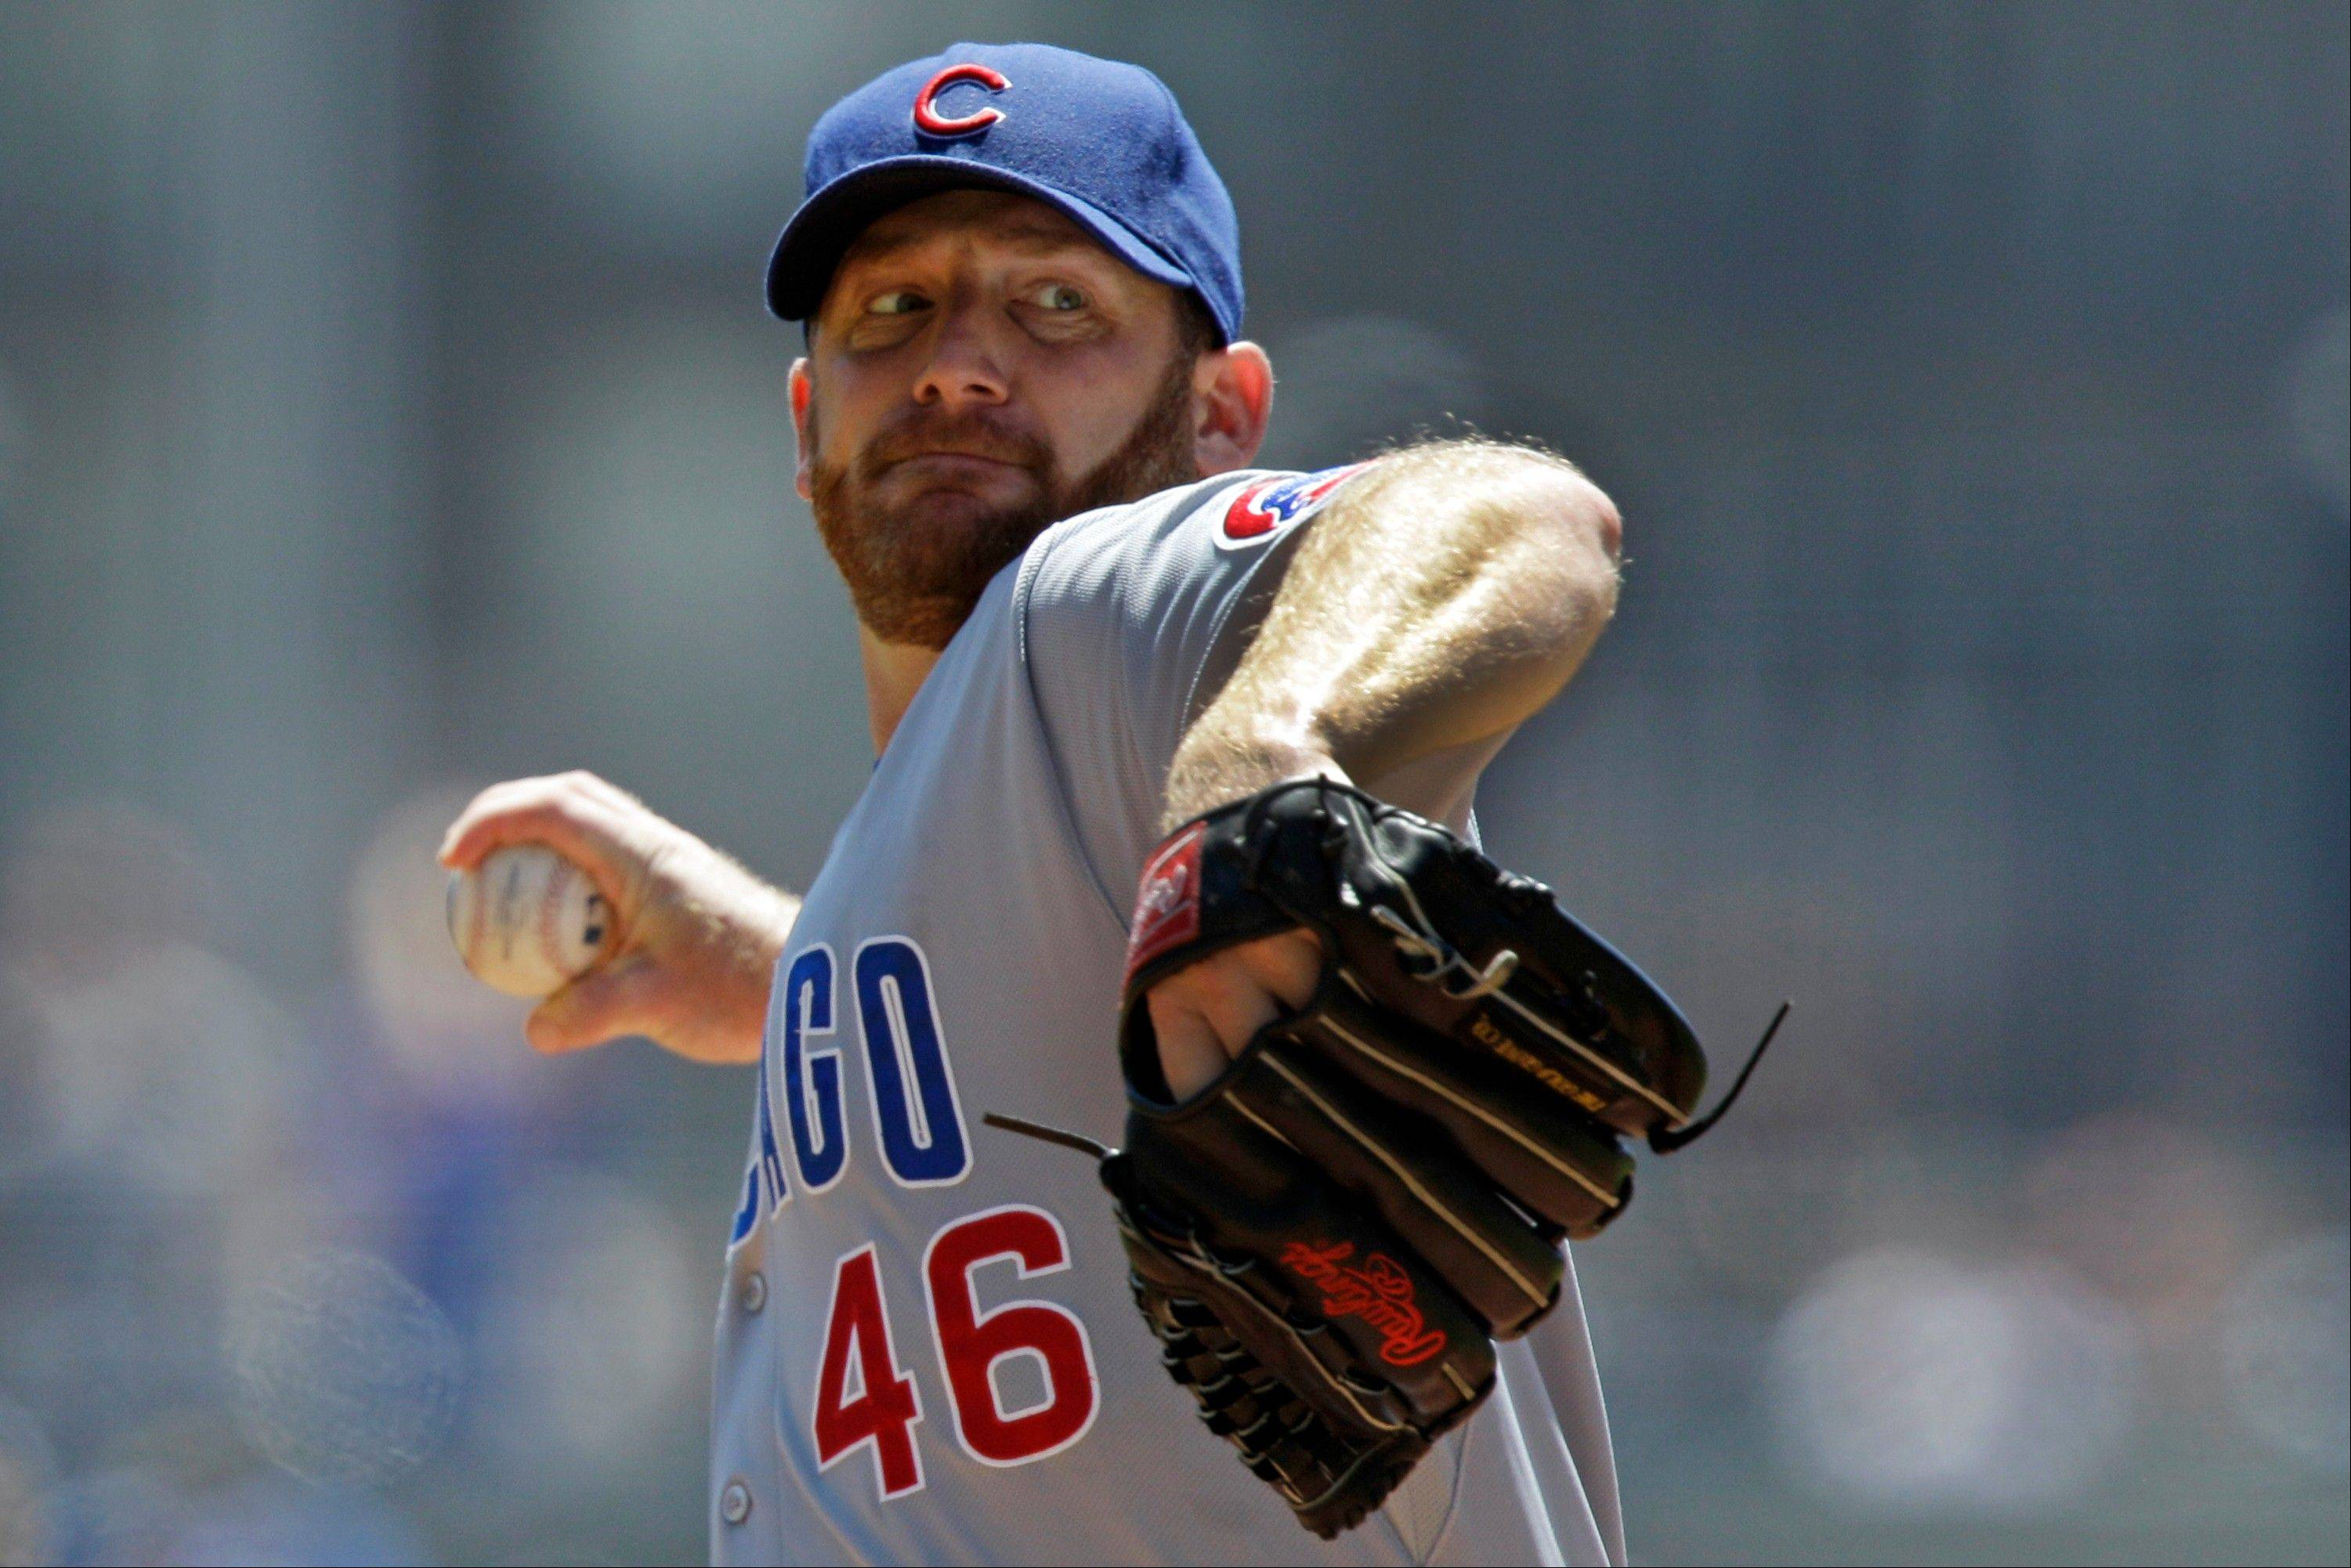 Ryan Dempster was traded Tuesday, and it wasn't to the Dodgers or the Braves. The Texas Rangers moved in and acquired the veteran right-hander just a few minutes before the trade deadline.